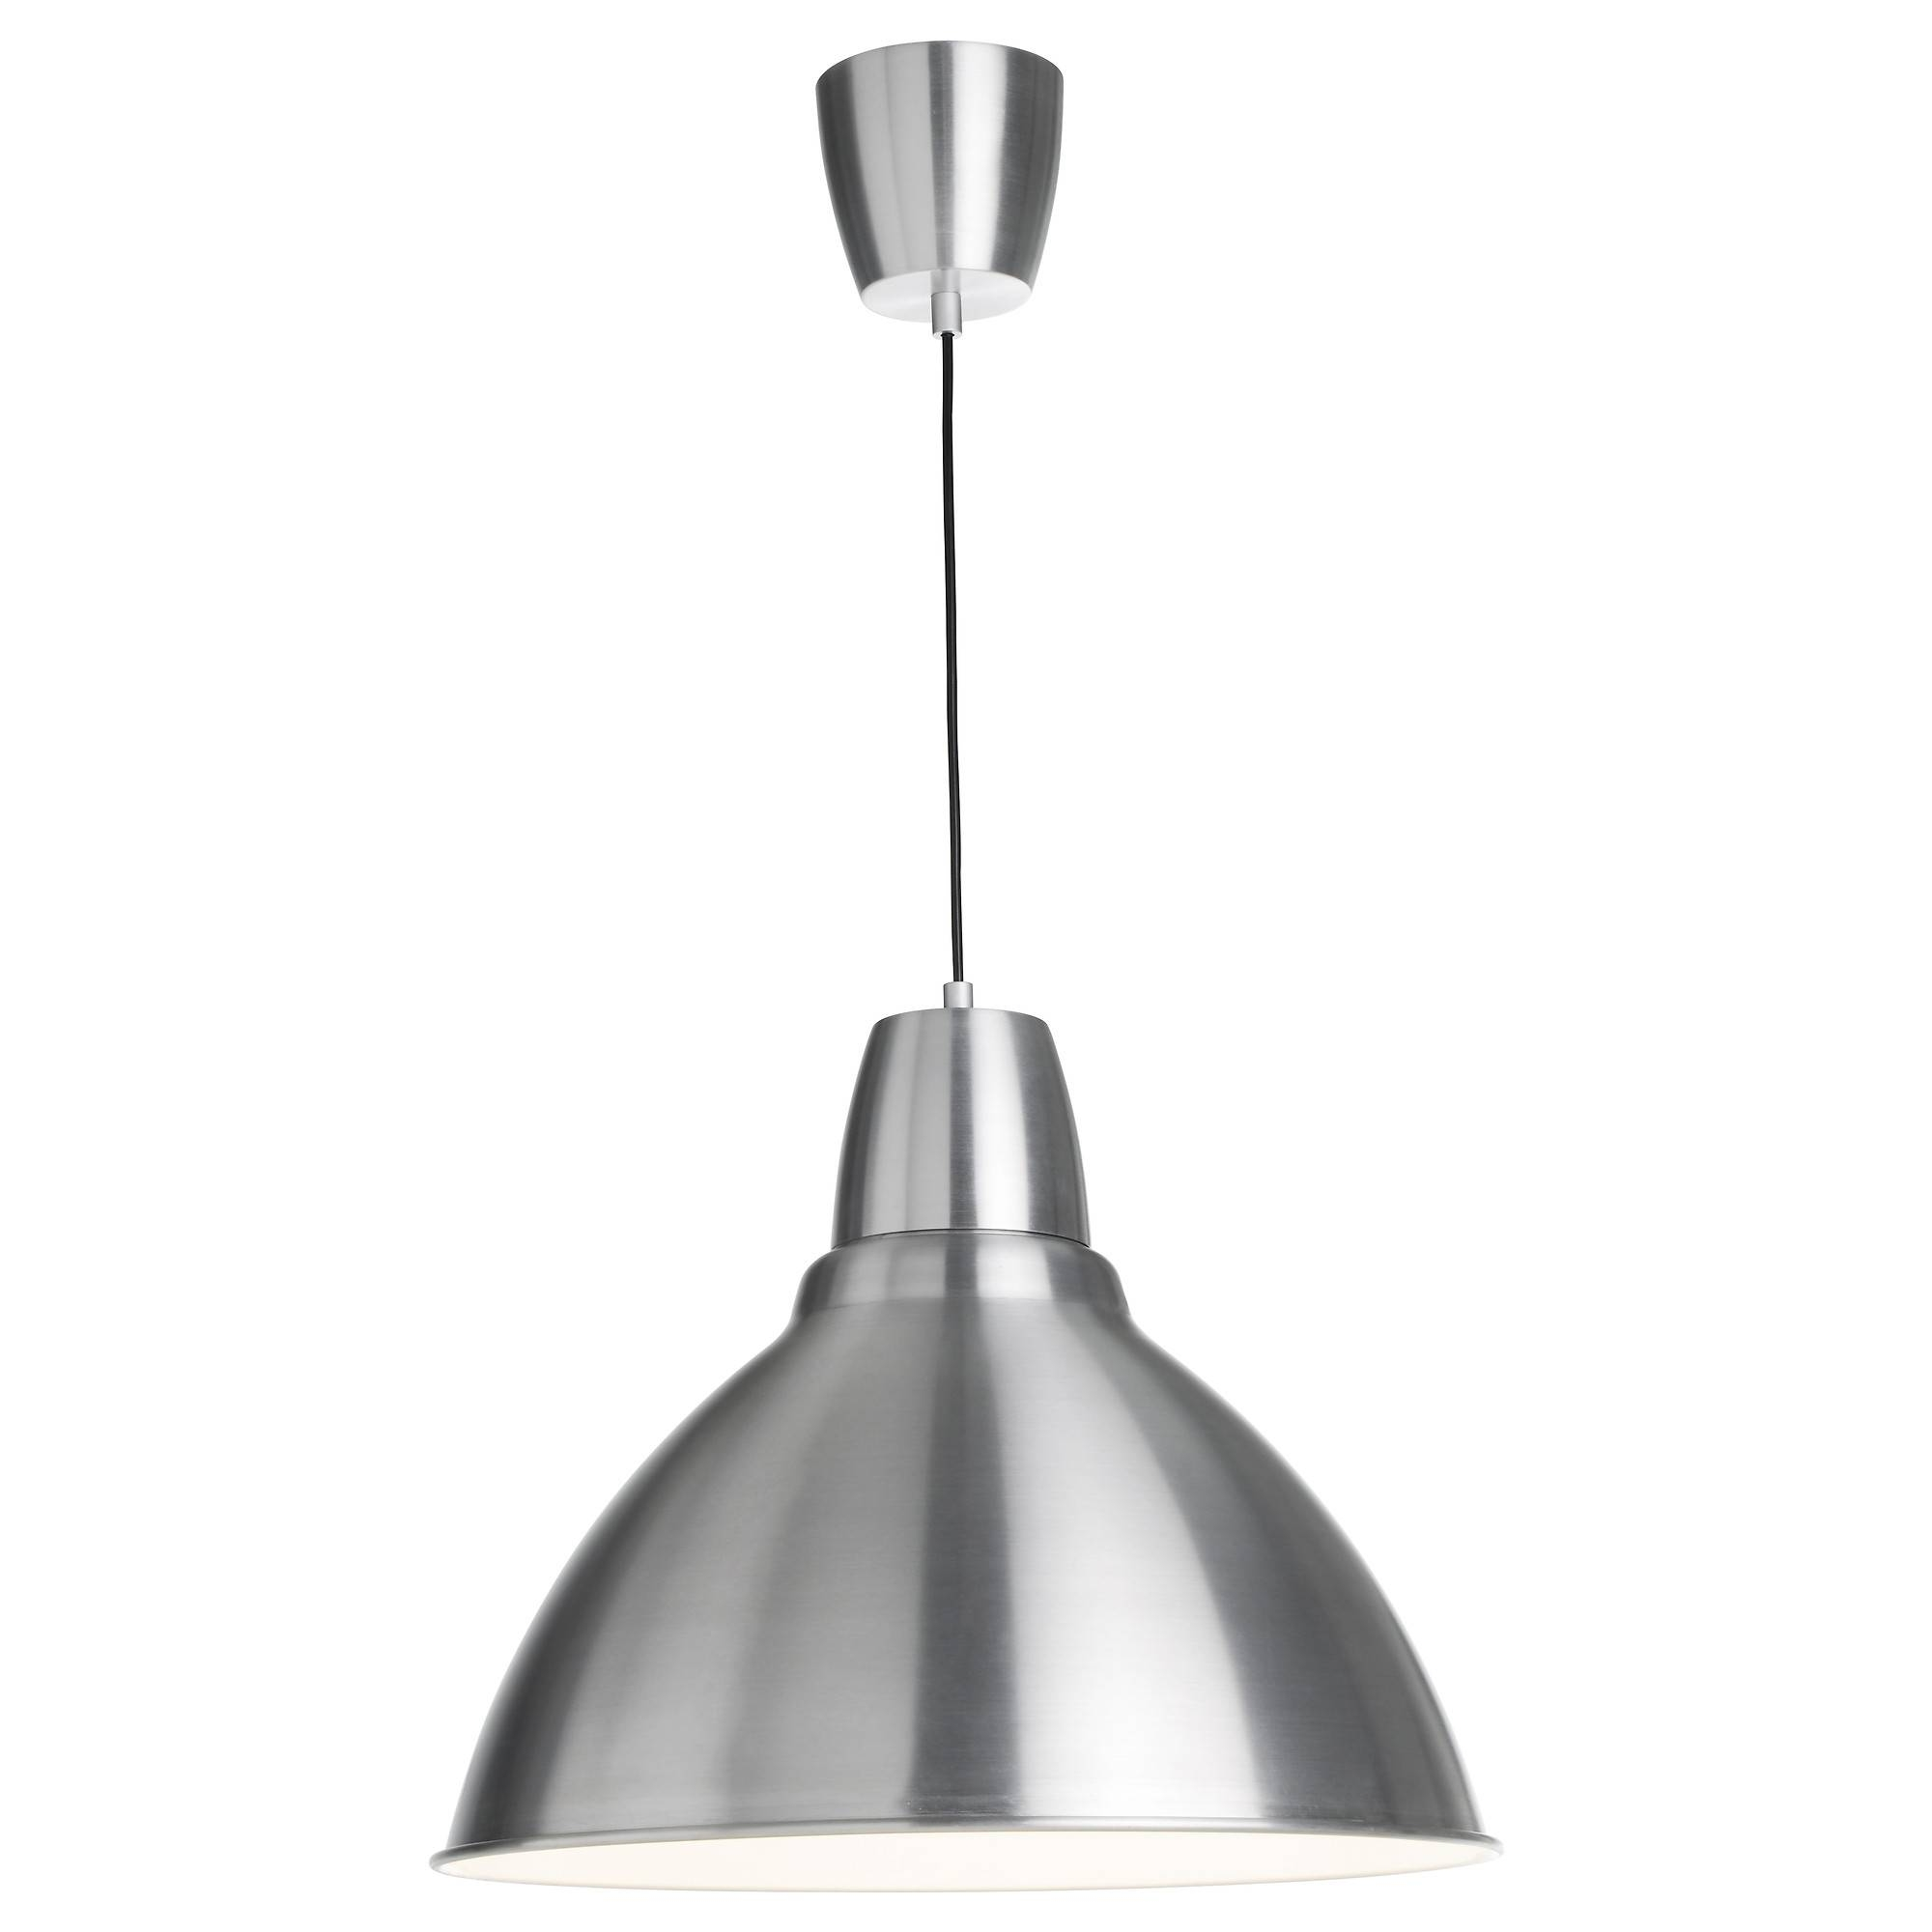 "Foto Pendant Lamp - 15 "" - Ikea intended for Ikea Plug In Pendant Lights (Image 8 of 15)"